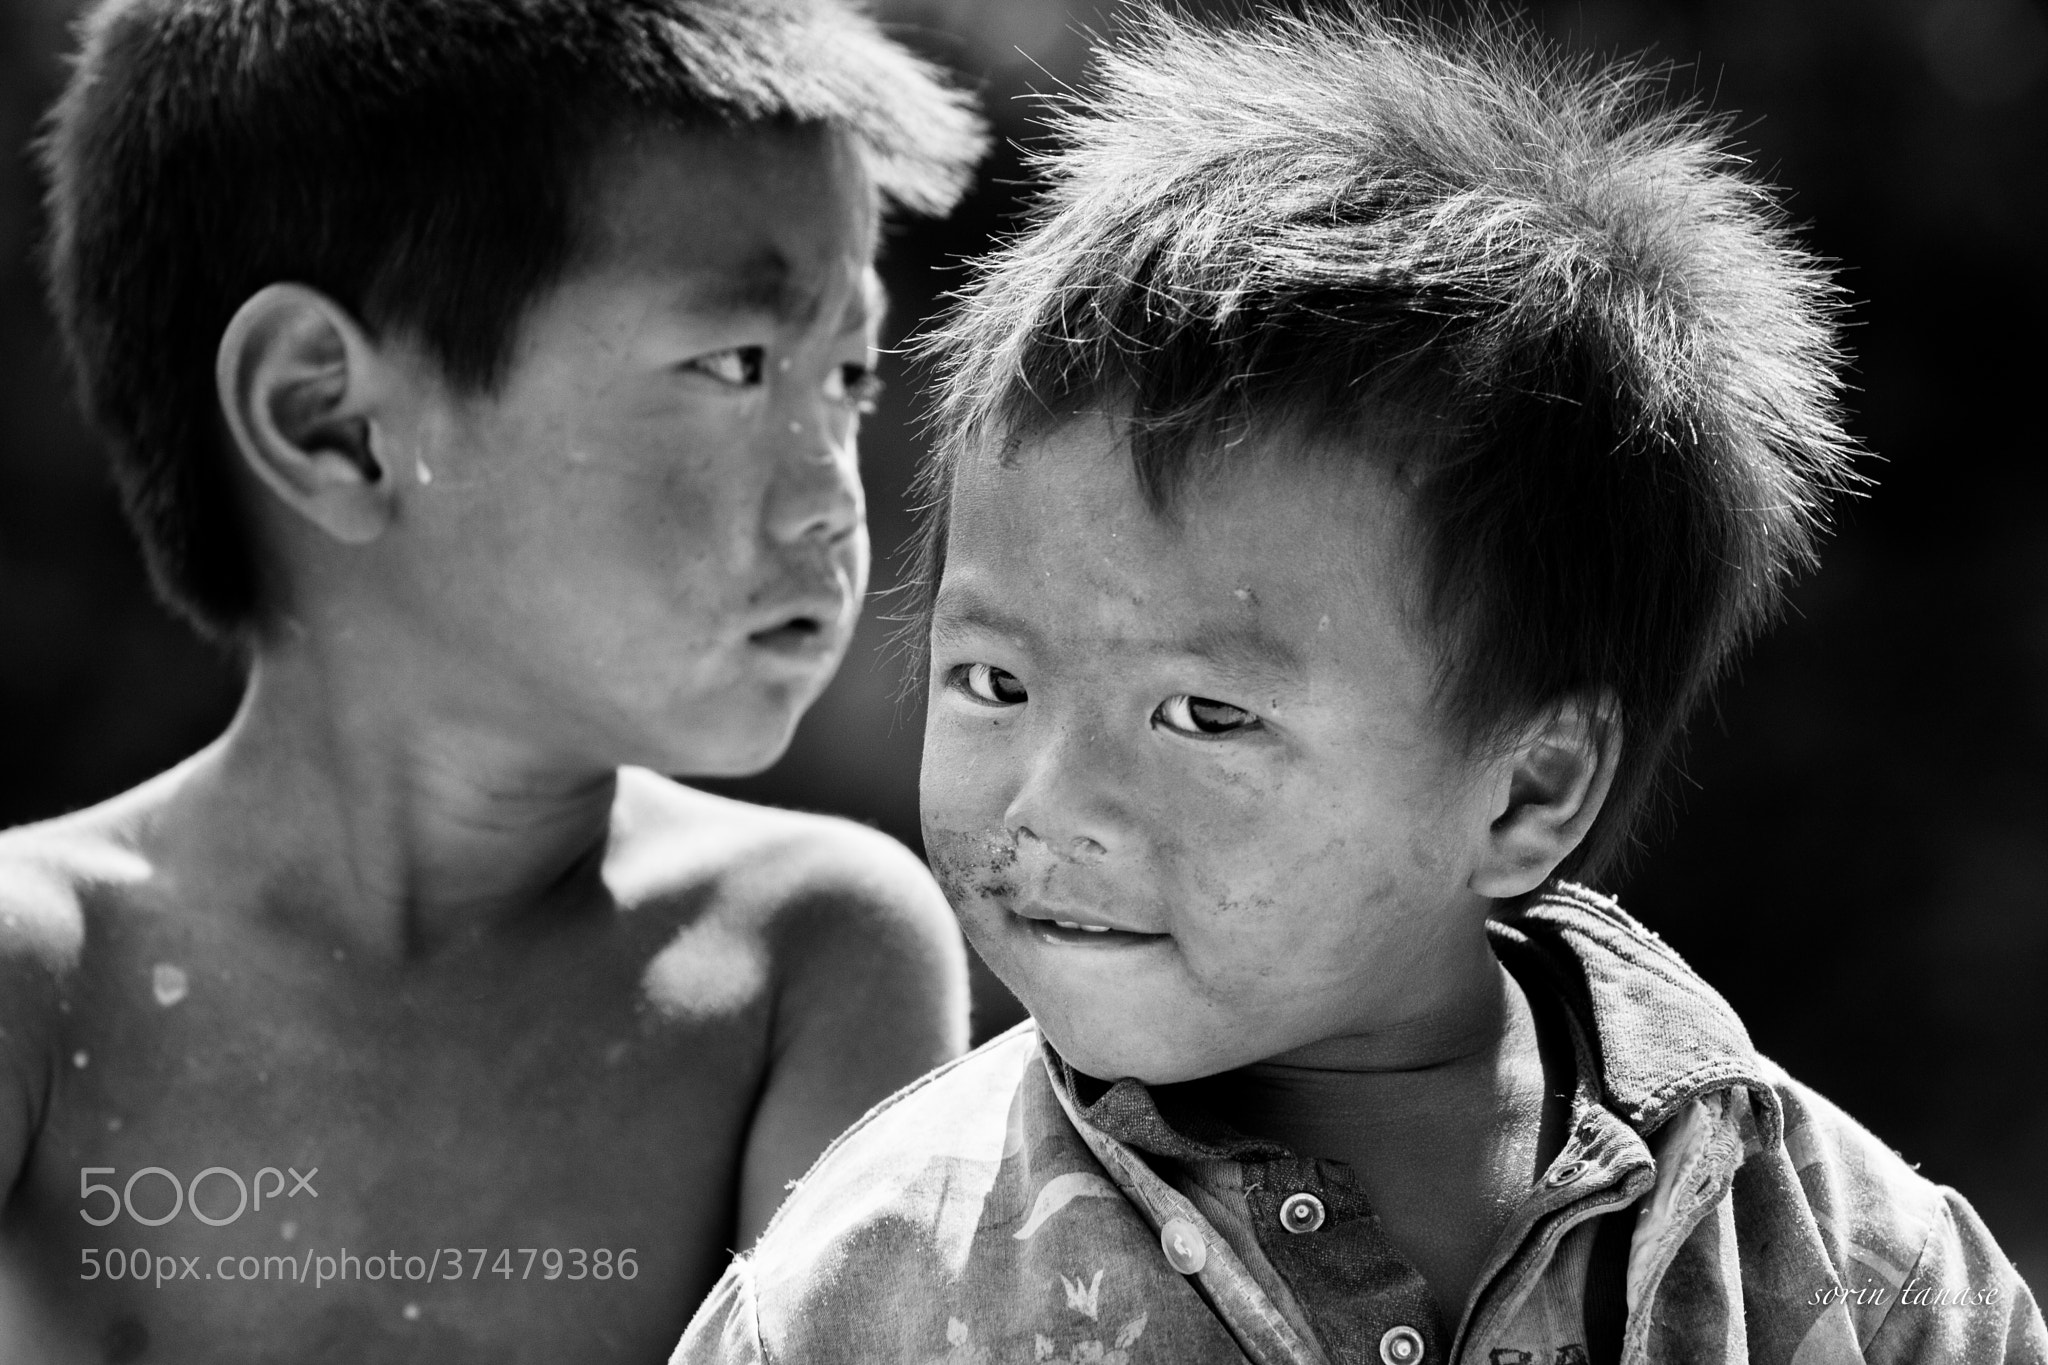 Photograph brothers by sorin tanase on 500px